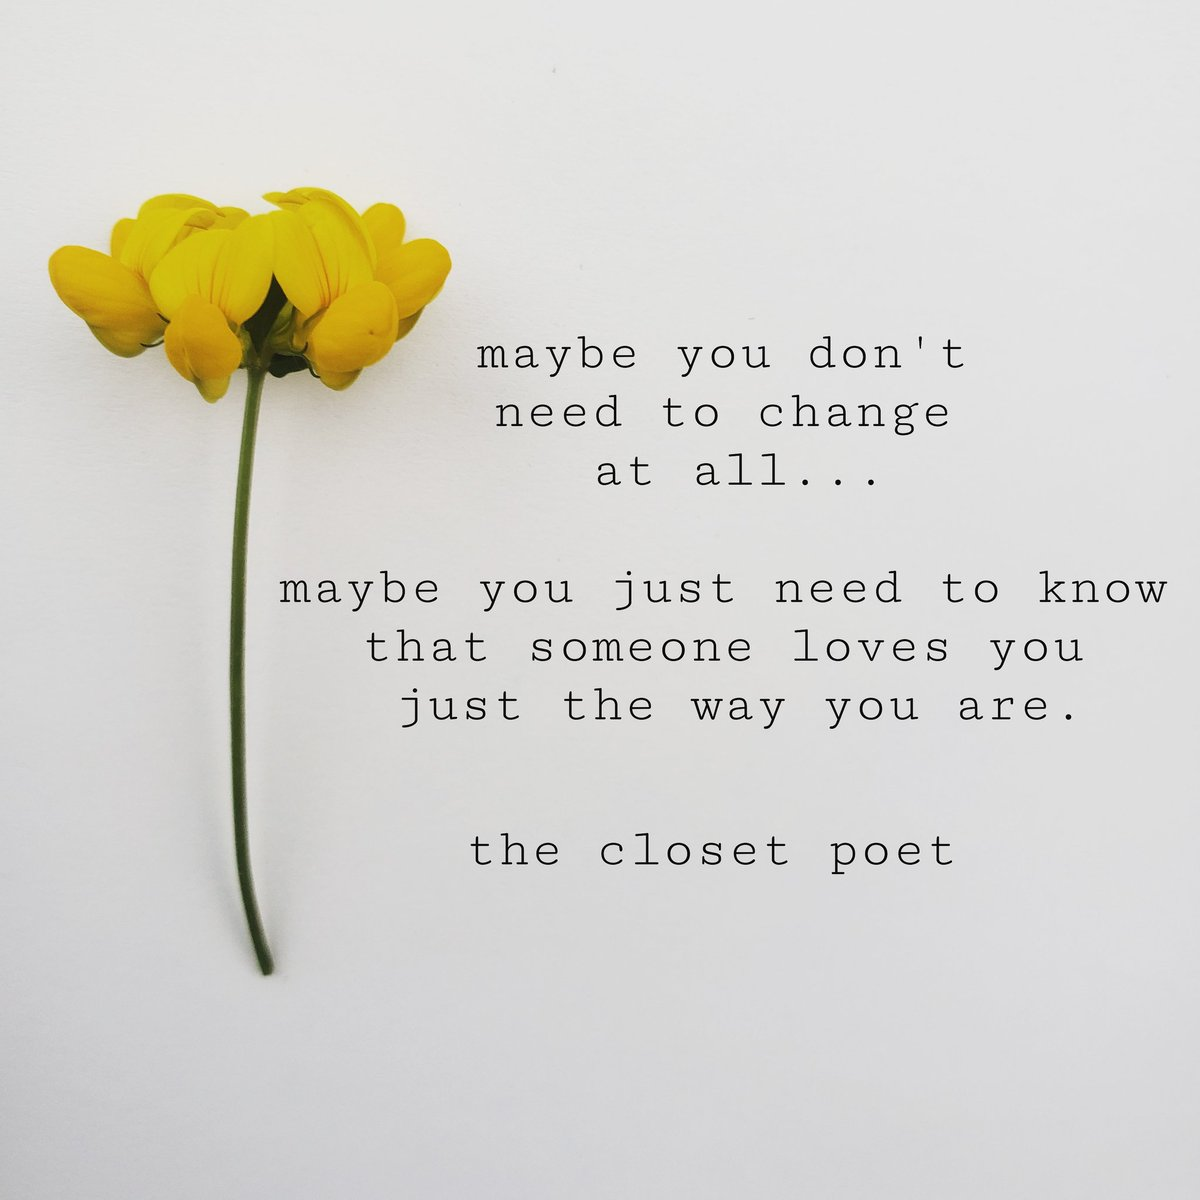 Maybe you don't  need to change at all...  Maybe you just need to know  that someone loves you  just the way you are.   #theclosetpoet #love pic.twitter.com/aMYe4tnAdi